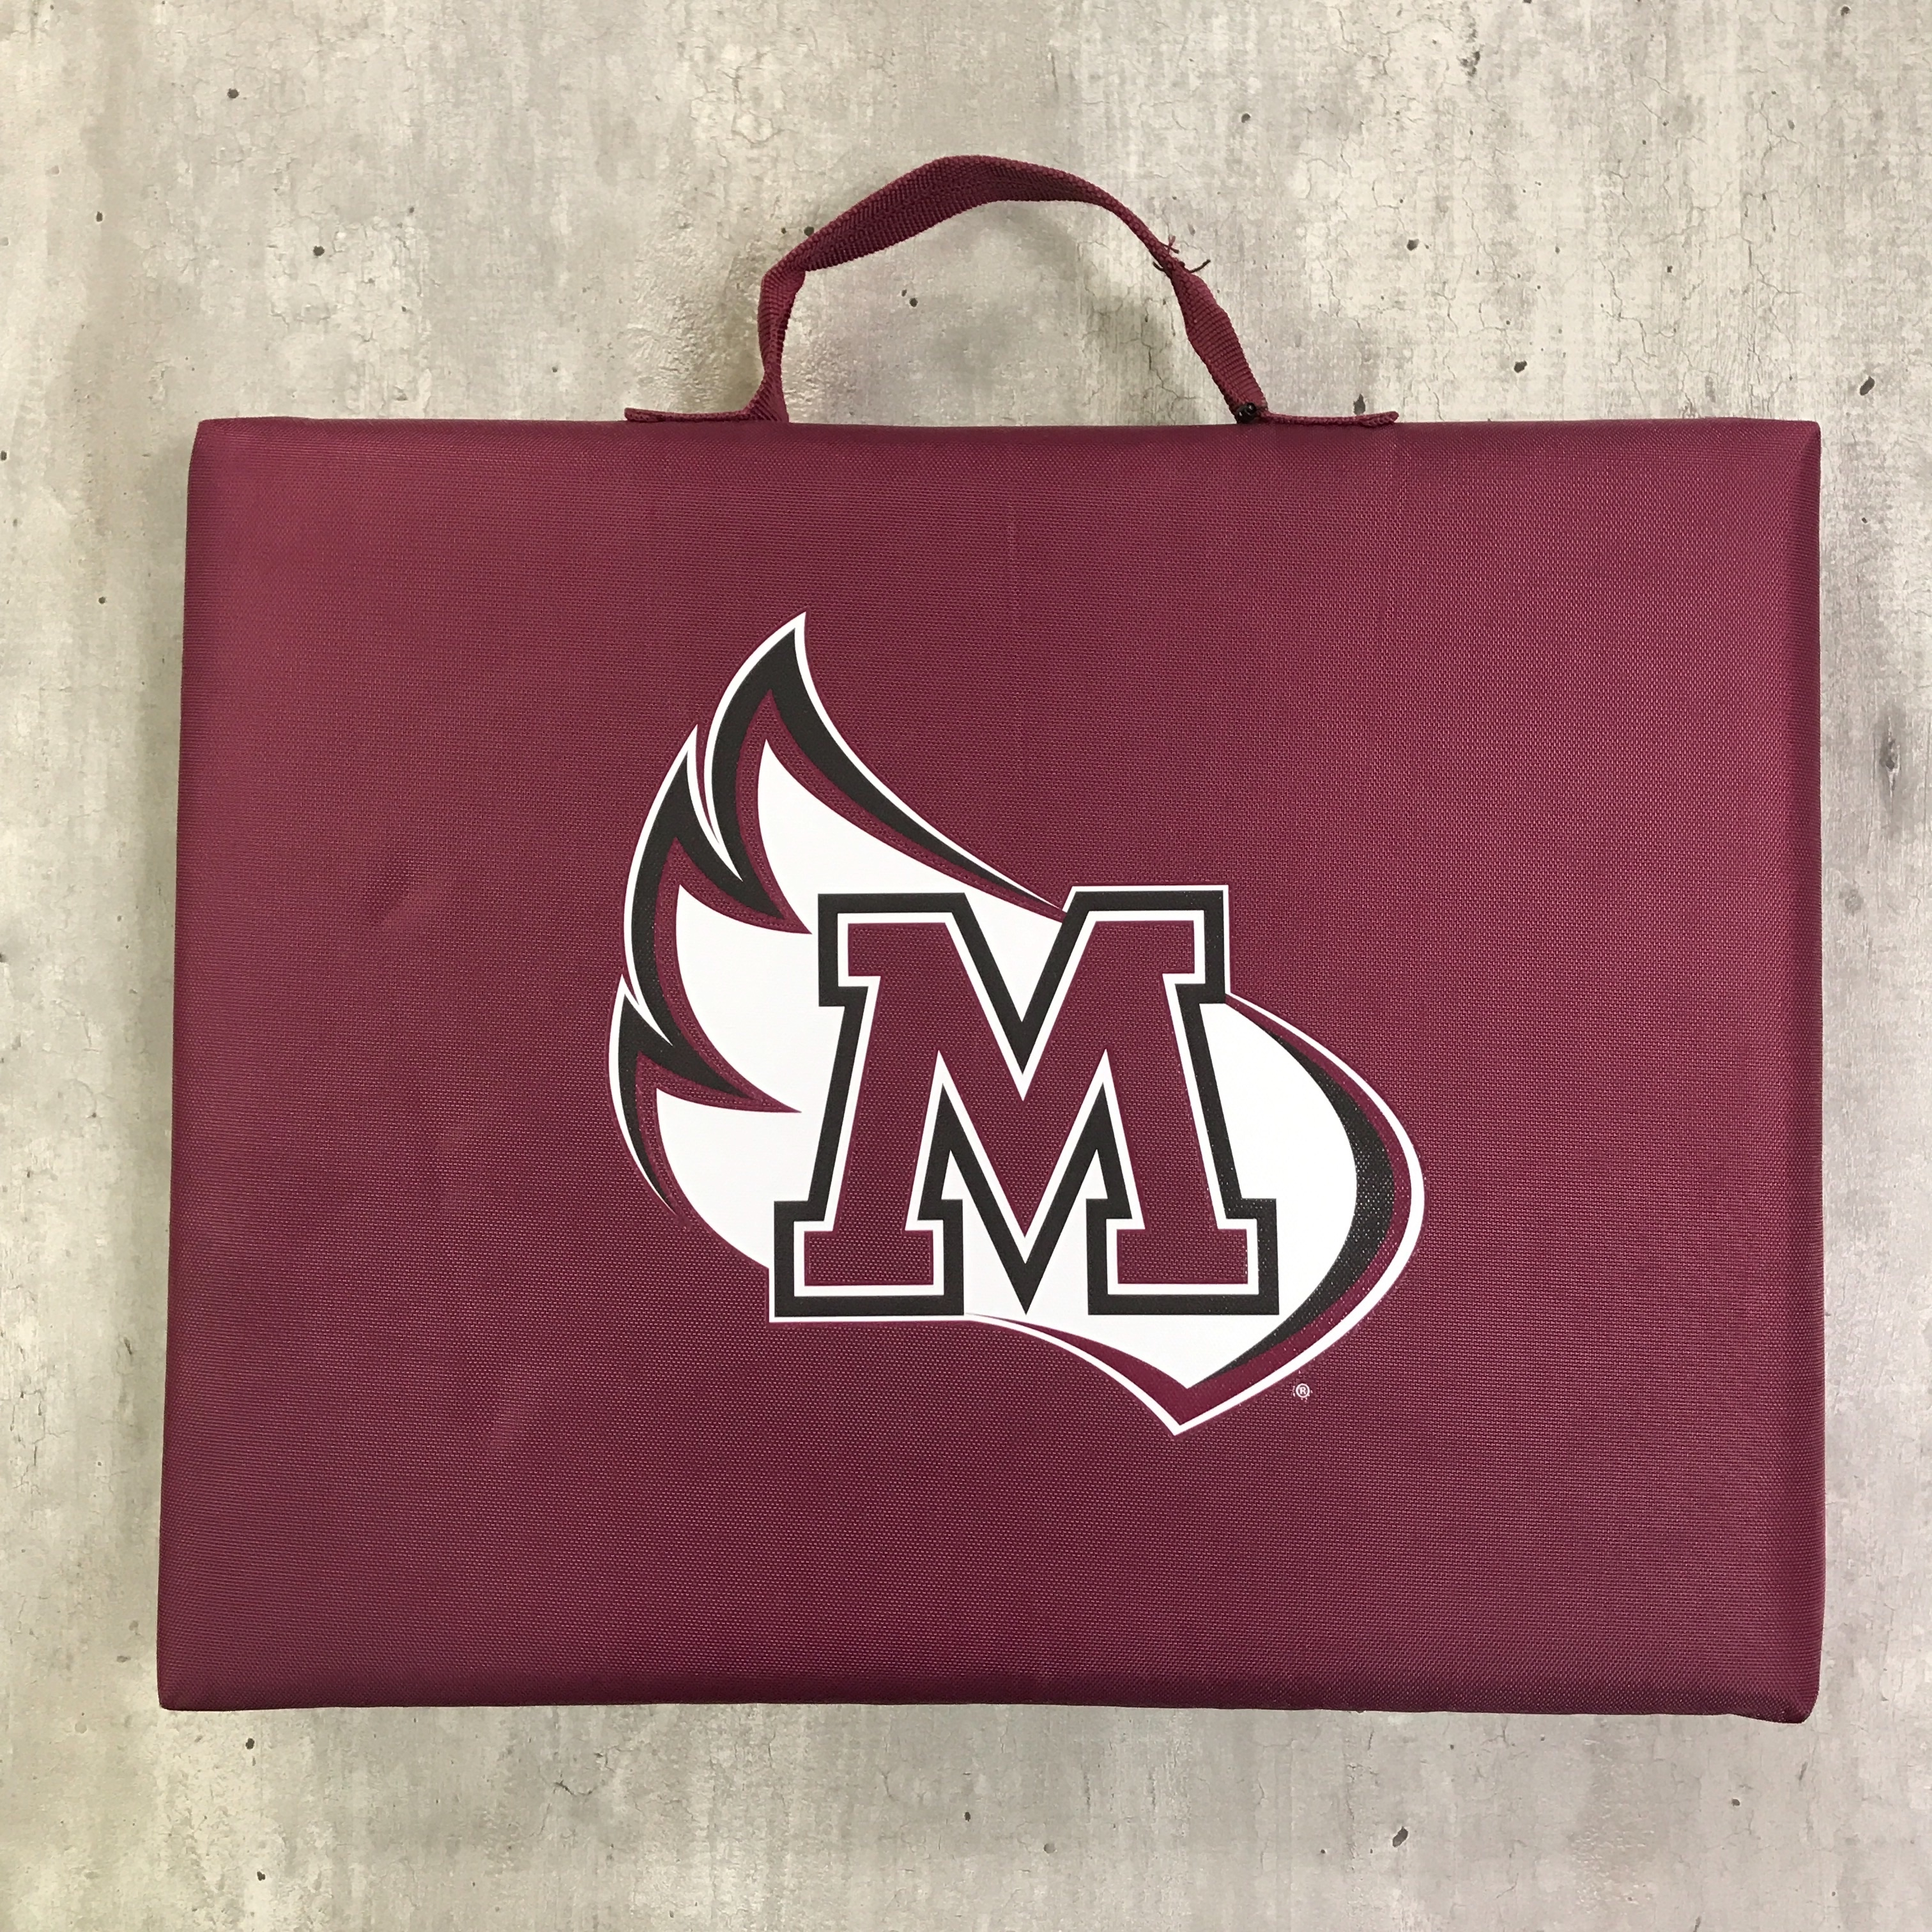 Image for the Bleacher Cushion Maroon Logo Brands product